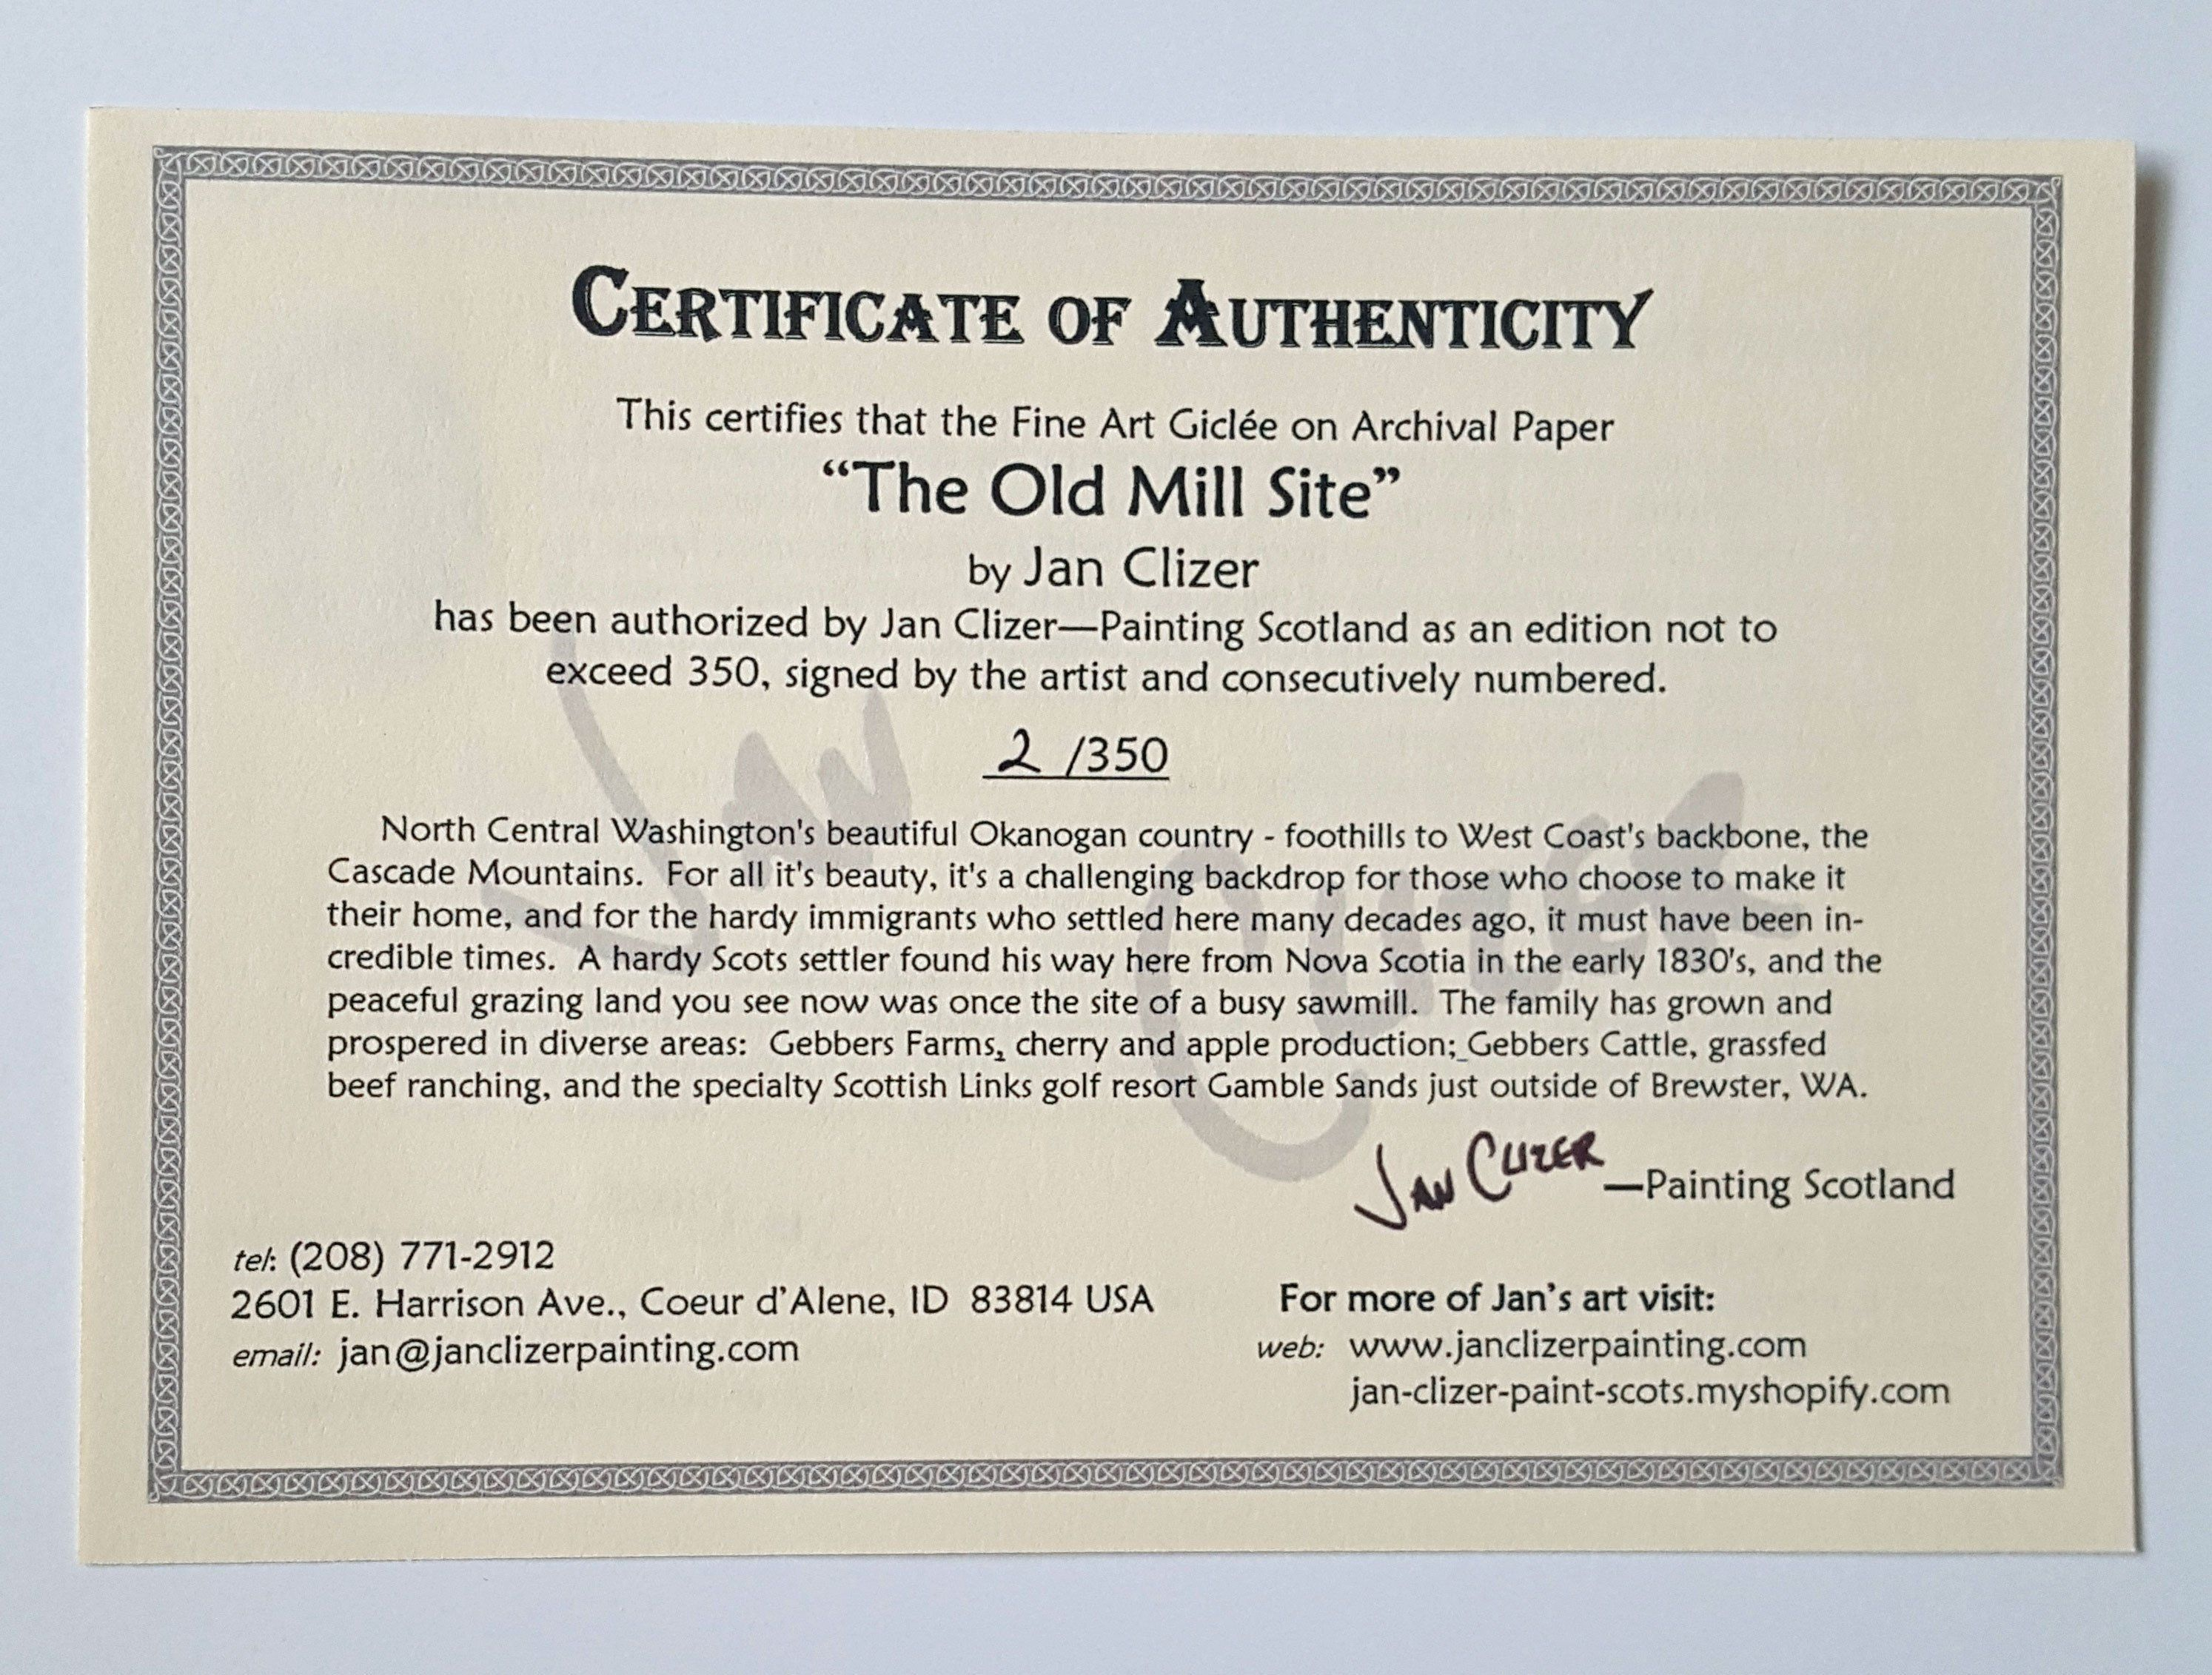 Sample Certificate of Authenticity | JAN CLIZER - PRINTS!